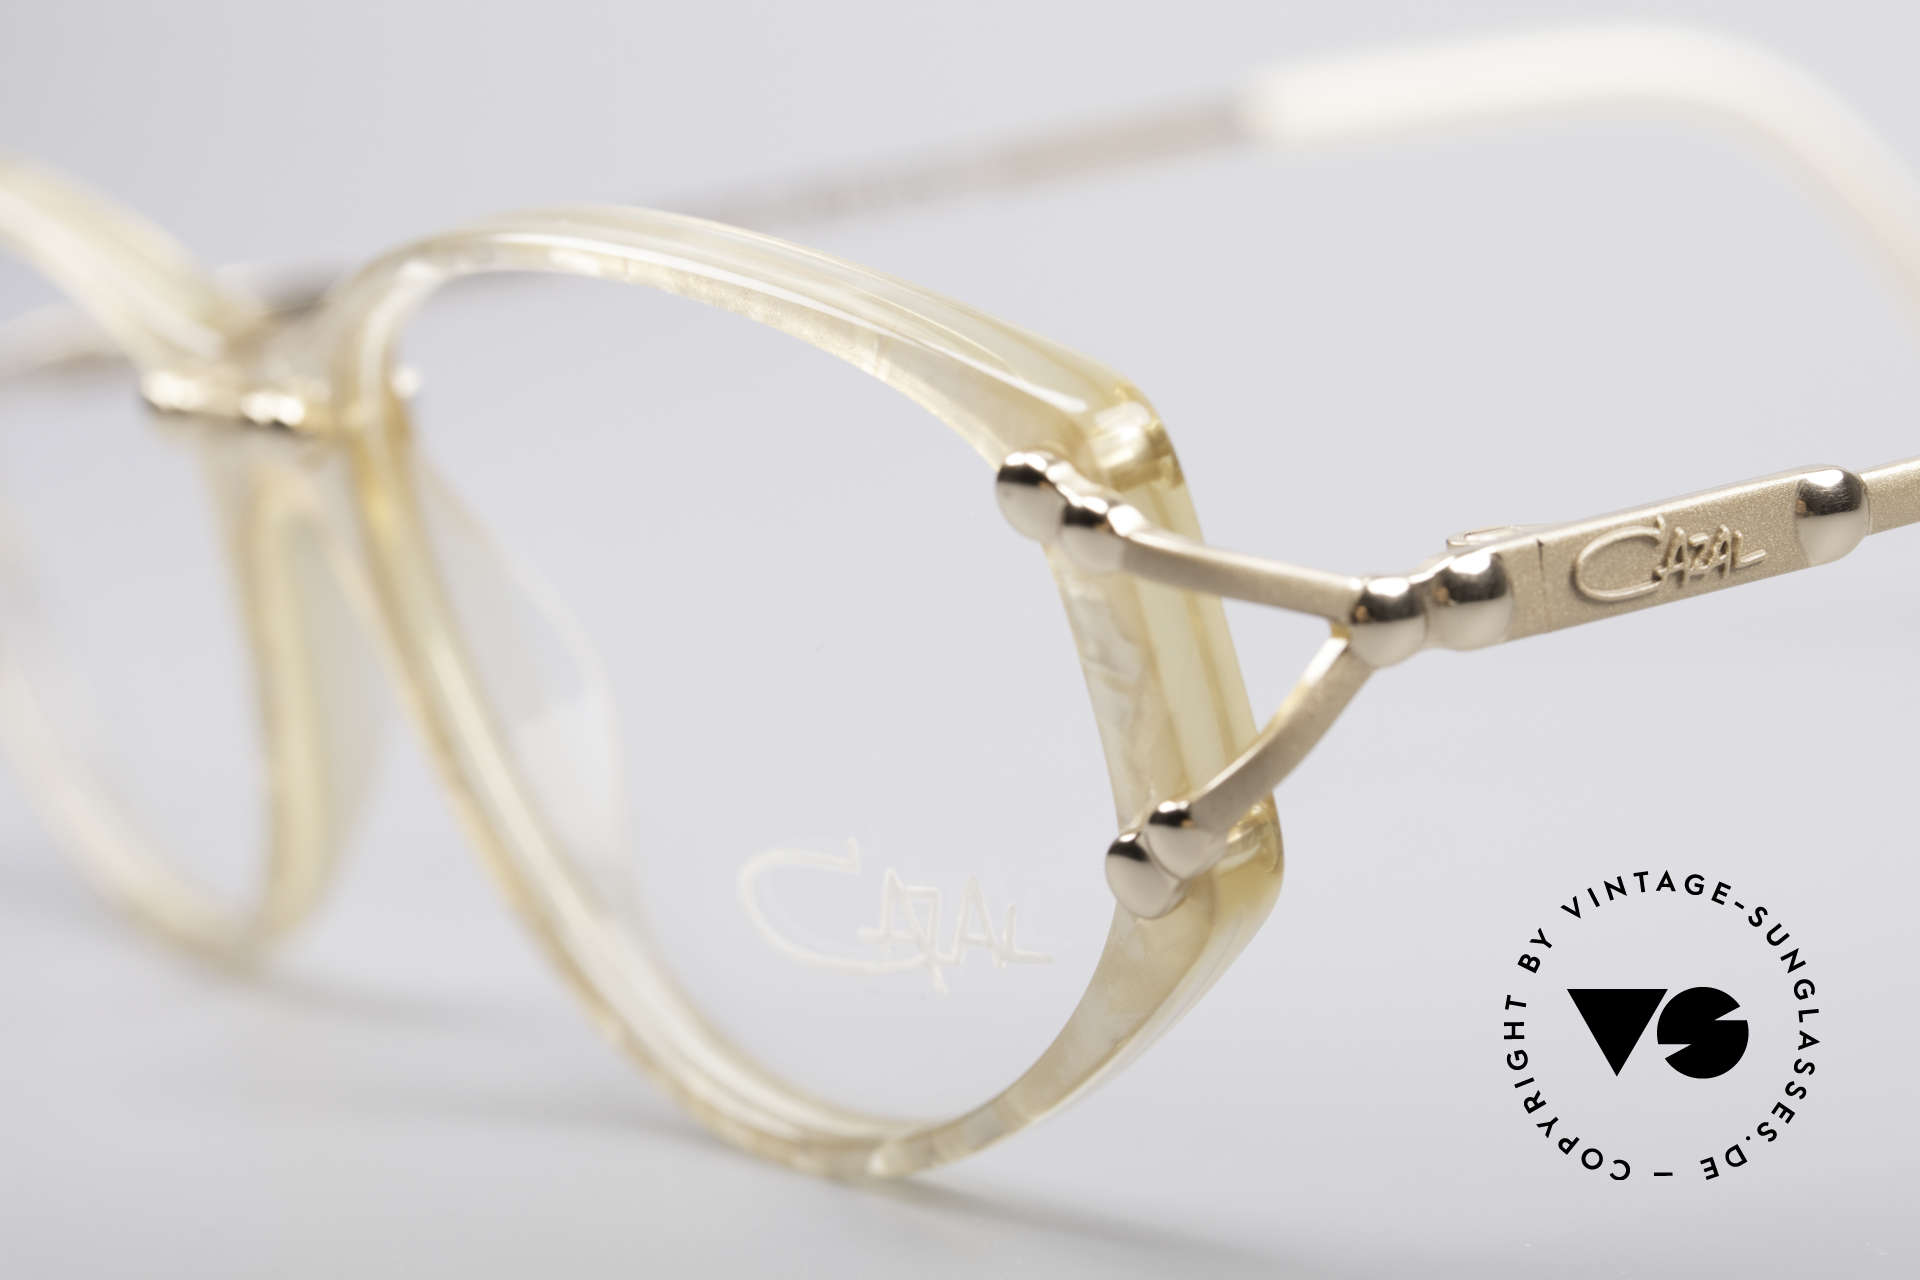 Cazal 375 Vintage Pearl Glasses, never used (like all our rare vintage Cazal eyewear), Made for Women